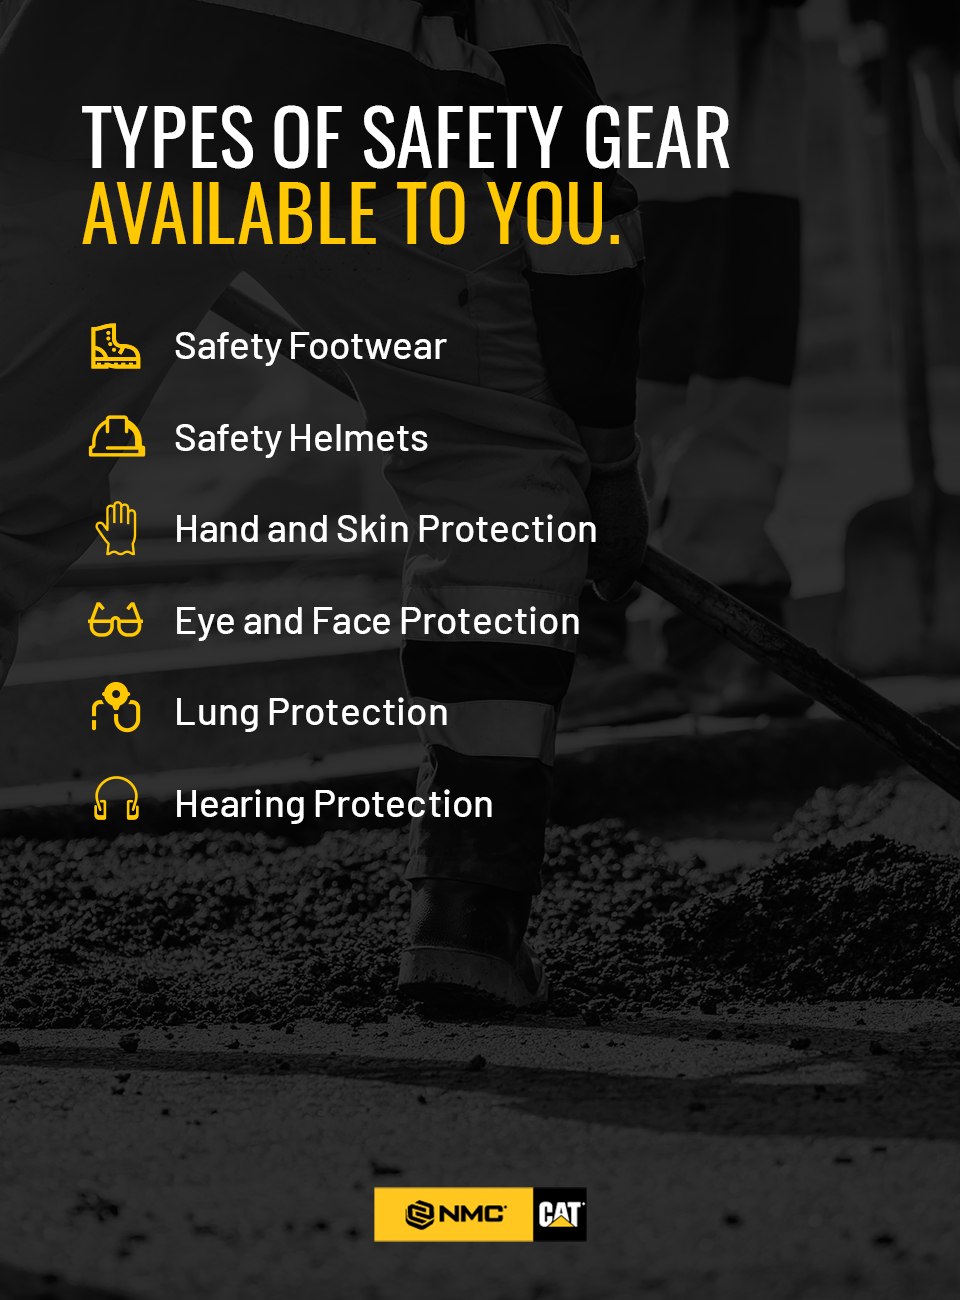 Types of Safety Gear Available to You.